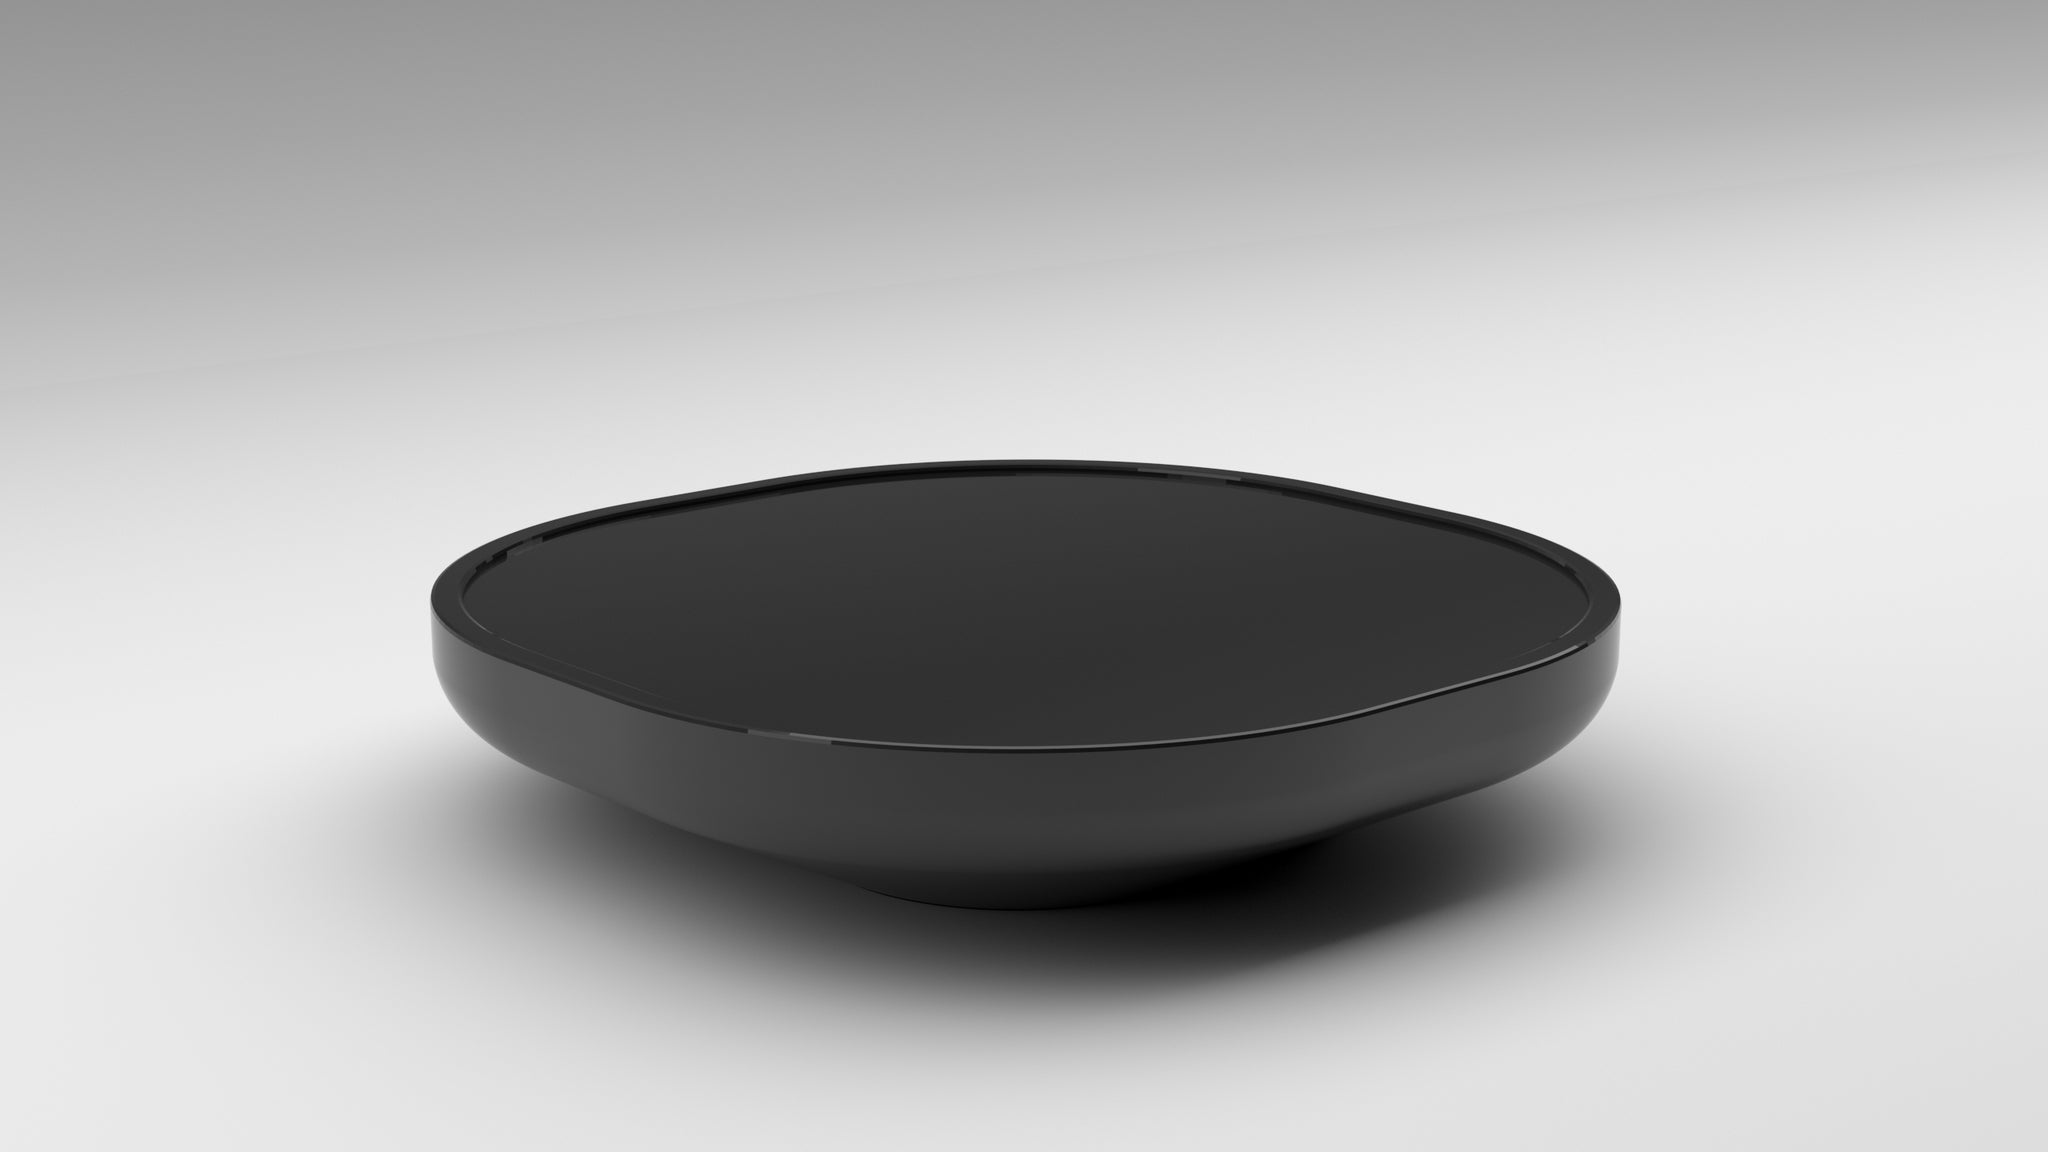 black coffee table, low coffee table, black lacquer, fine lacquer, akar lacquer, akar fine lacquer, glossy lacquer table,